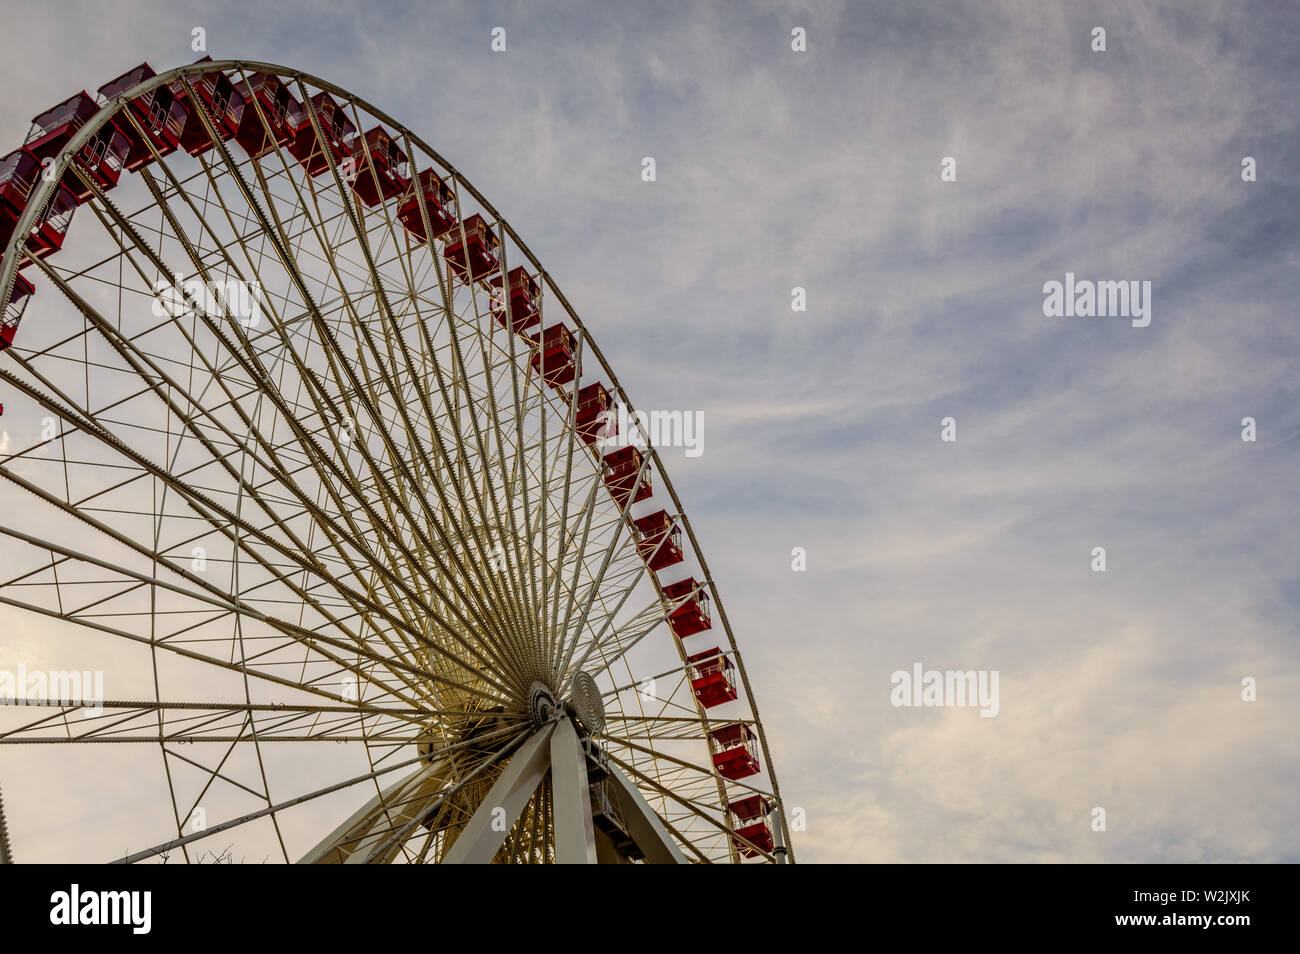 Riesenrad auf dem Navy Pier in Chicago Stockfoto